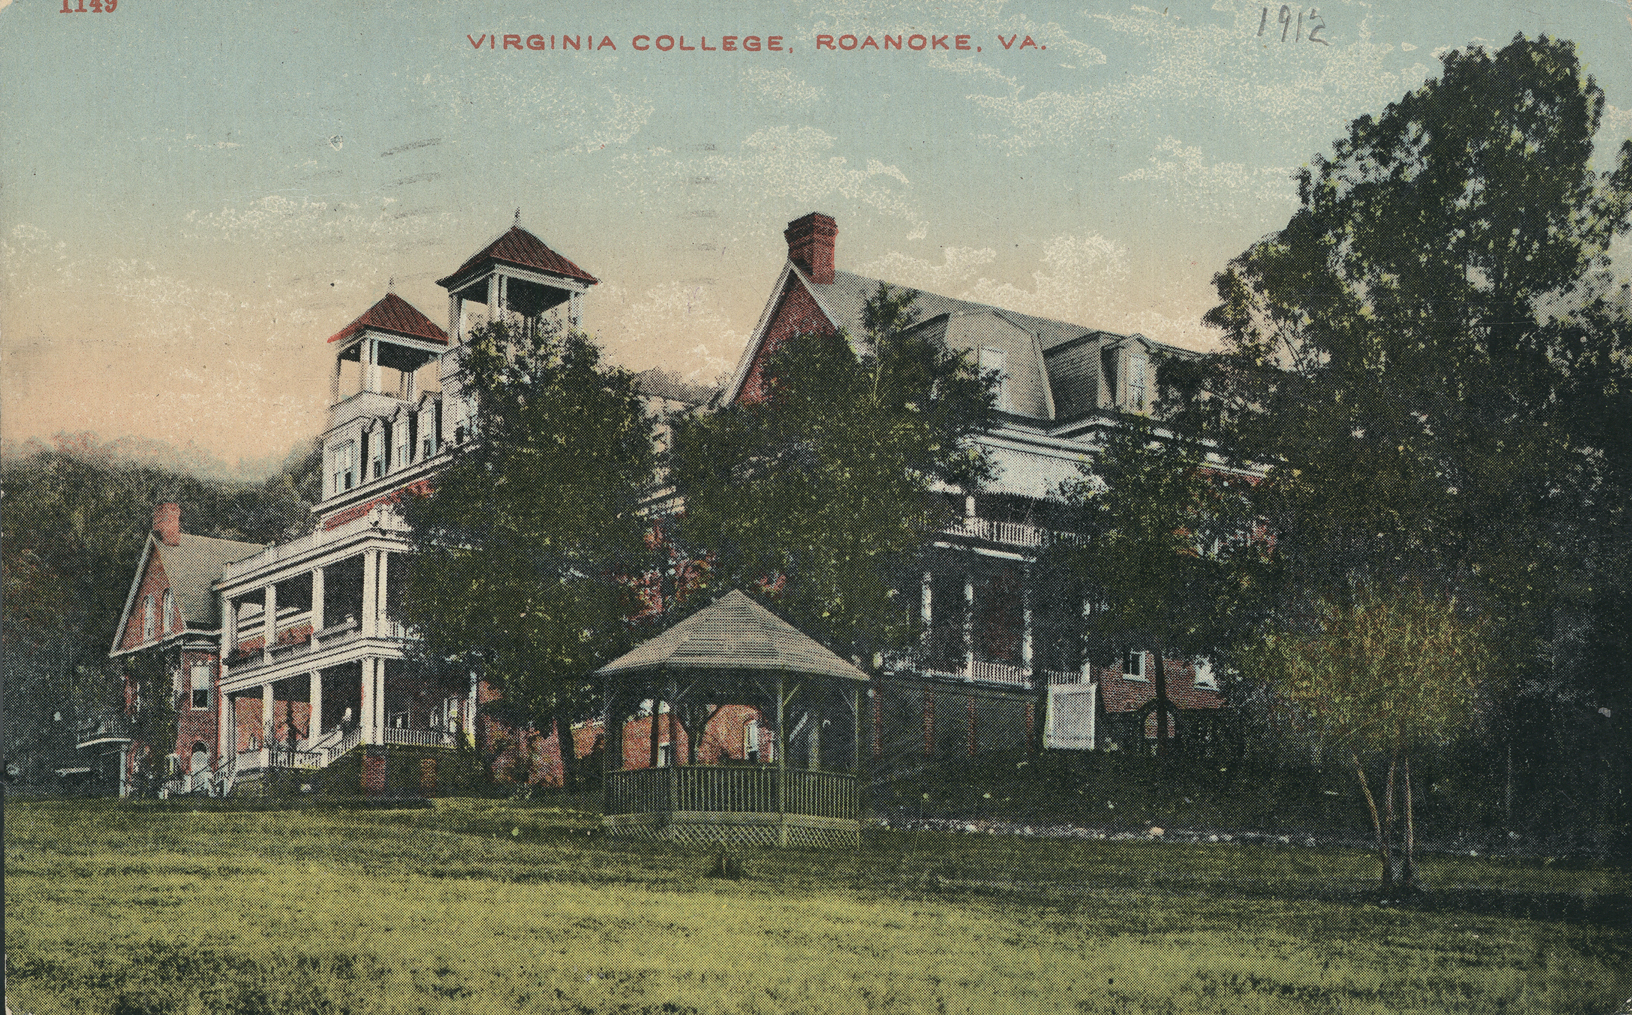 PC 133.02 Virginia College.jpg